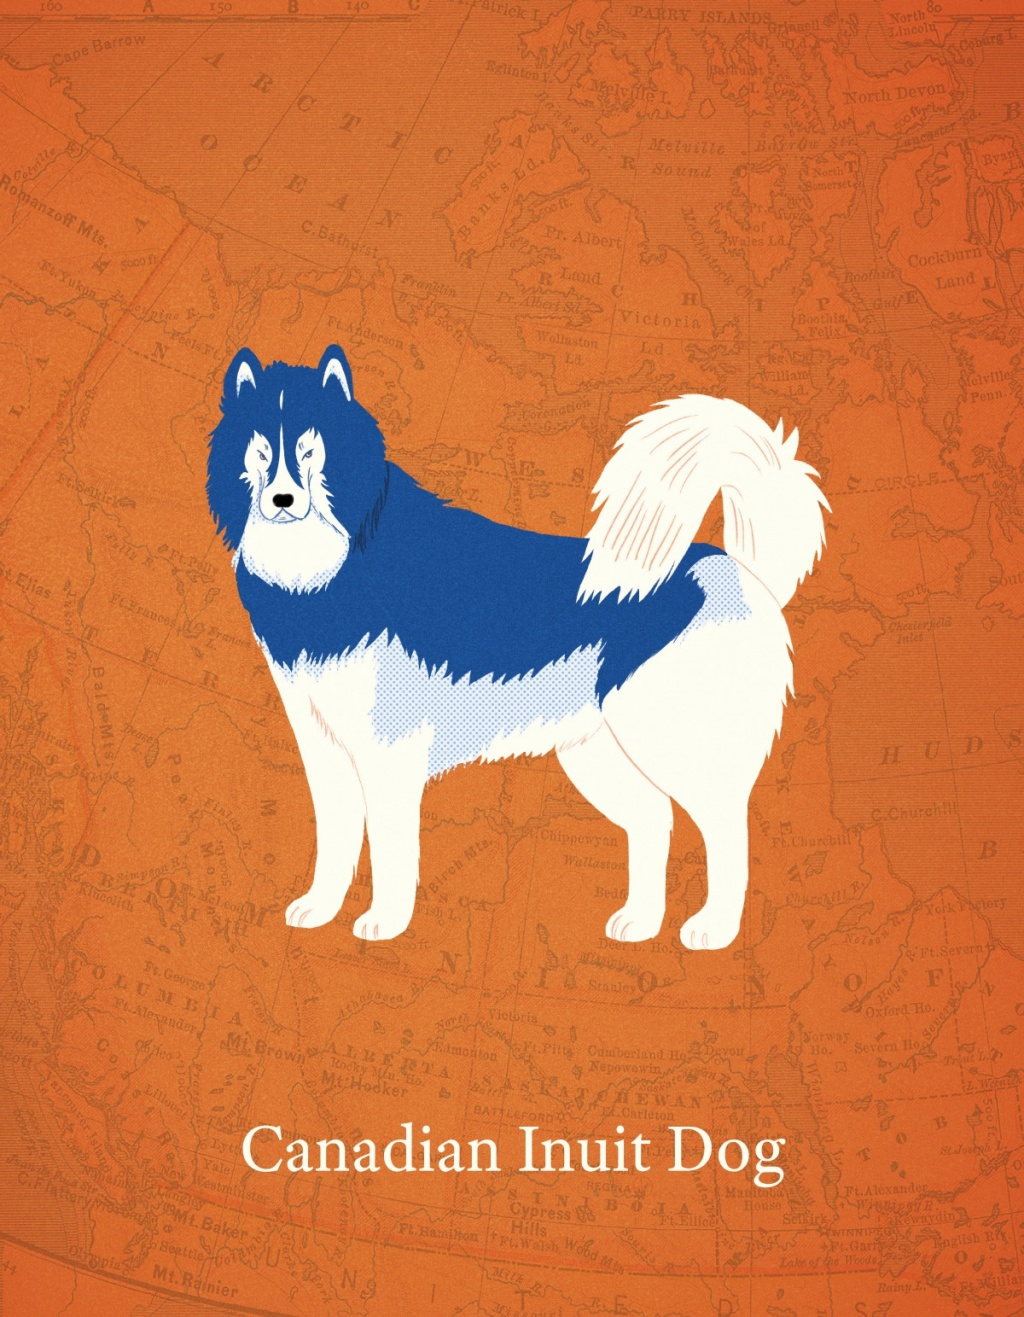 Canadian Dogs by Mika Senda